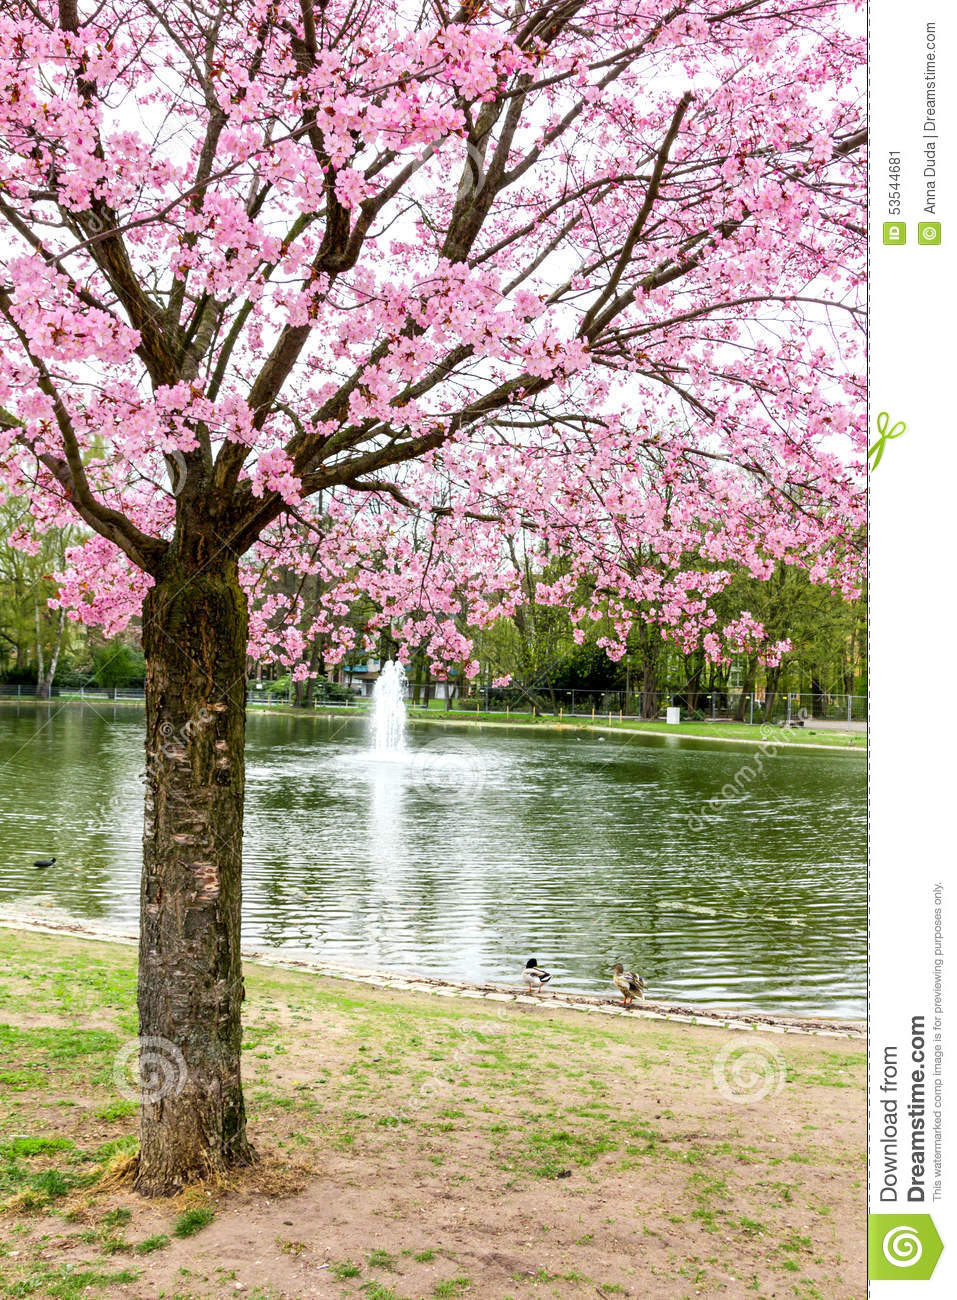 Japanese Cherry Tree With Pink Flowers Stock Image Image Of Garden